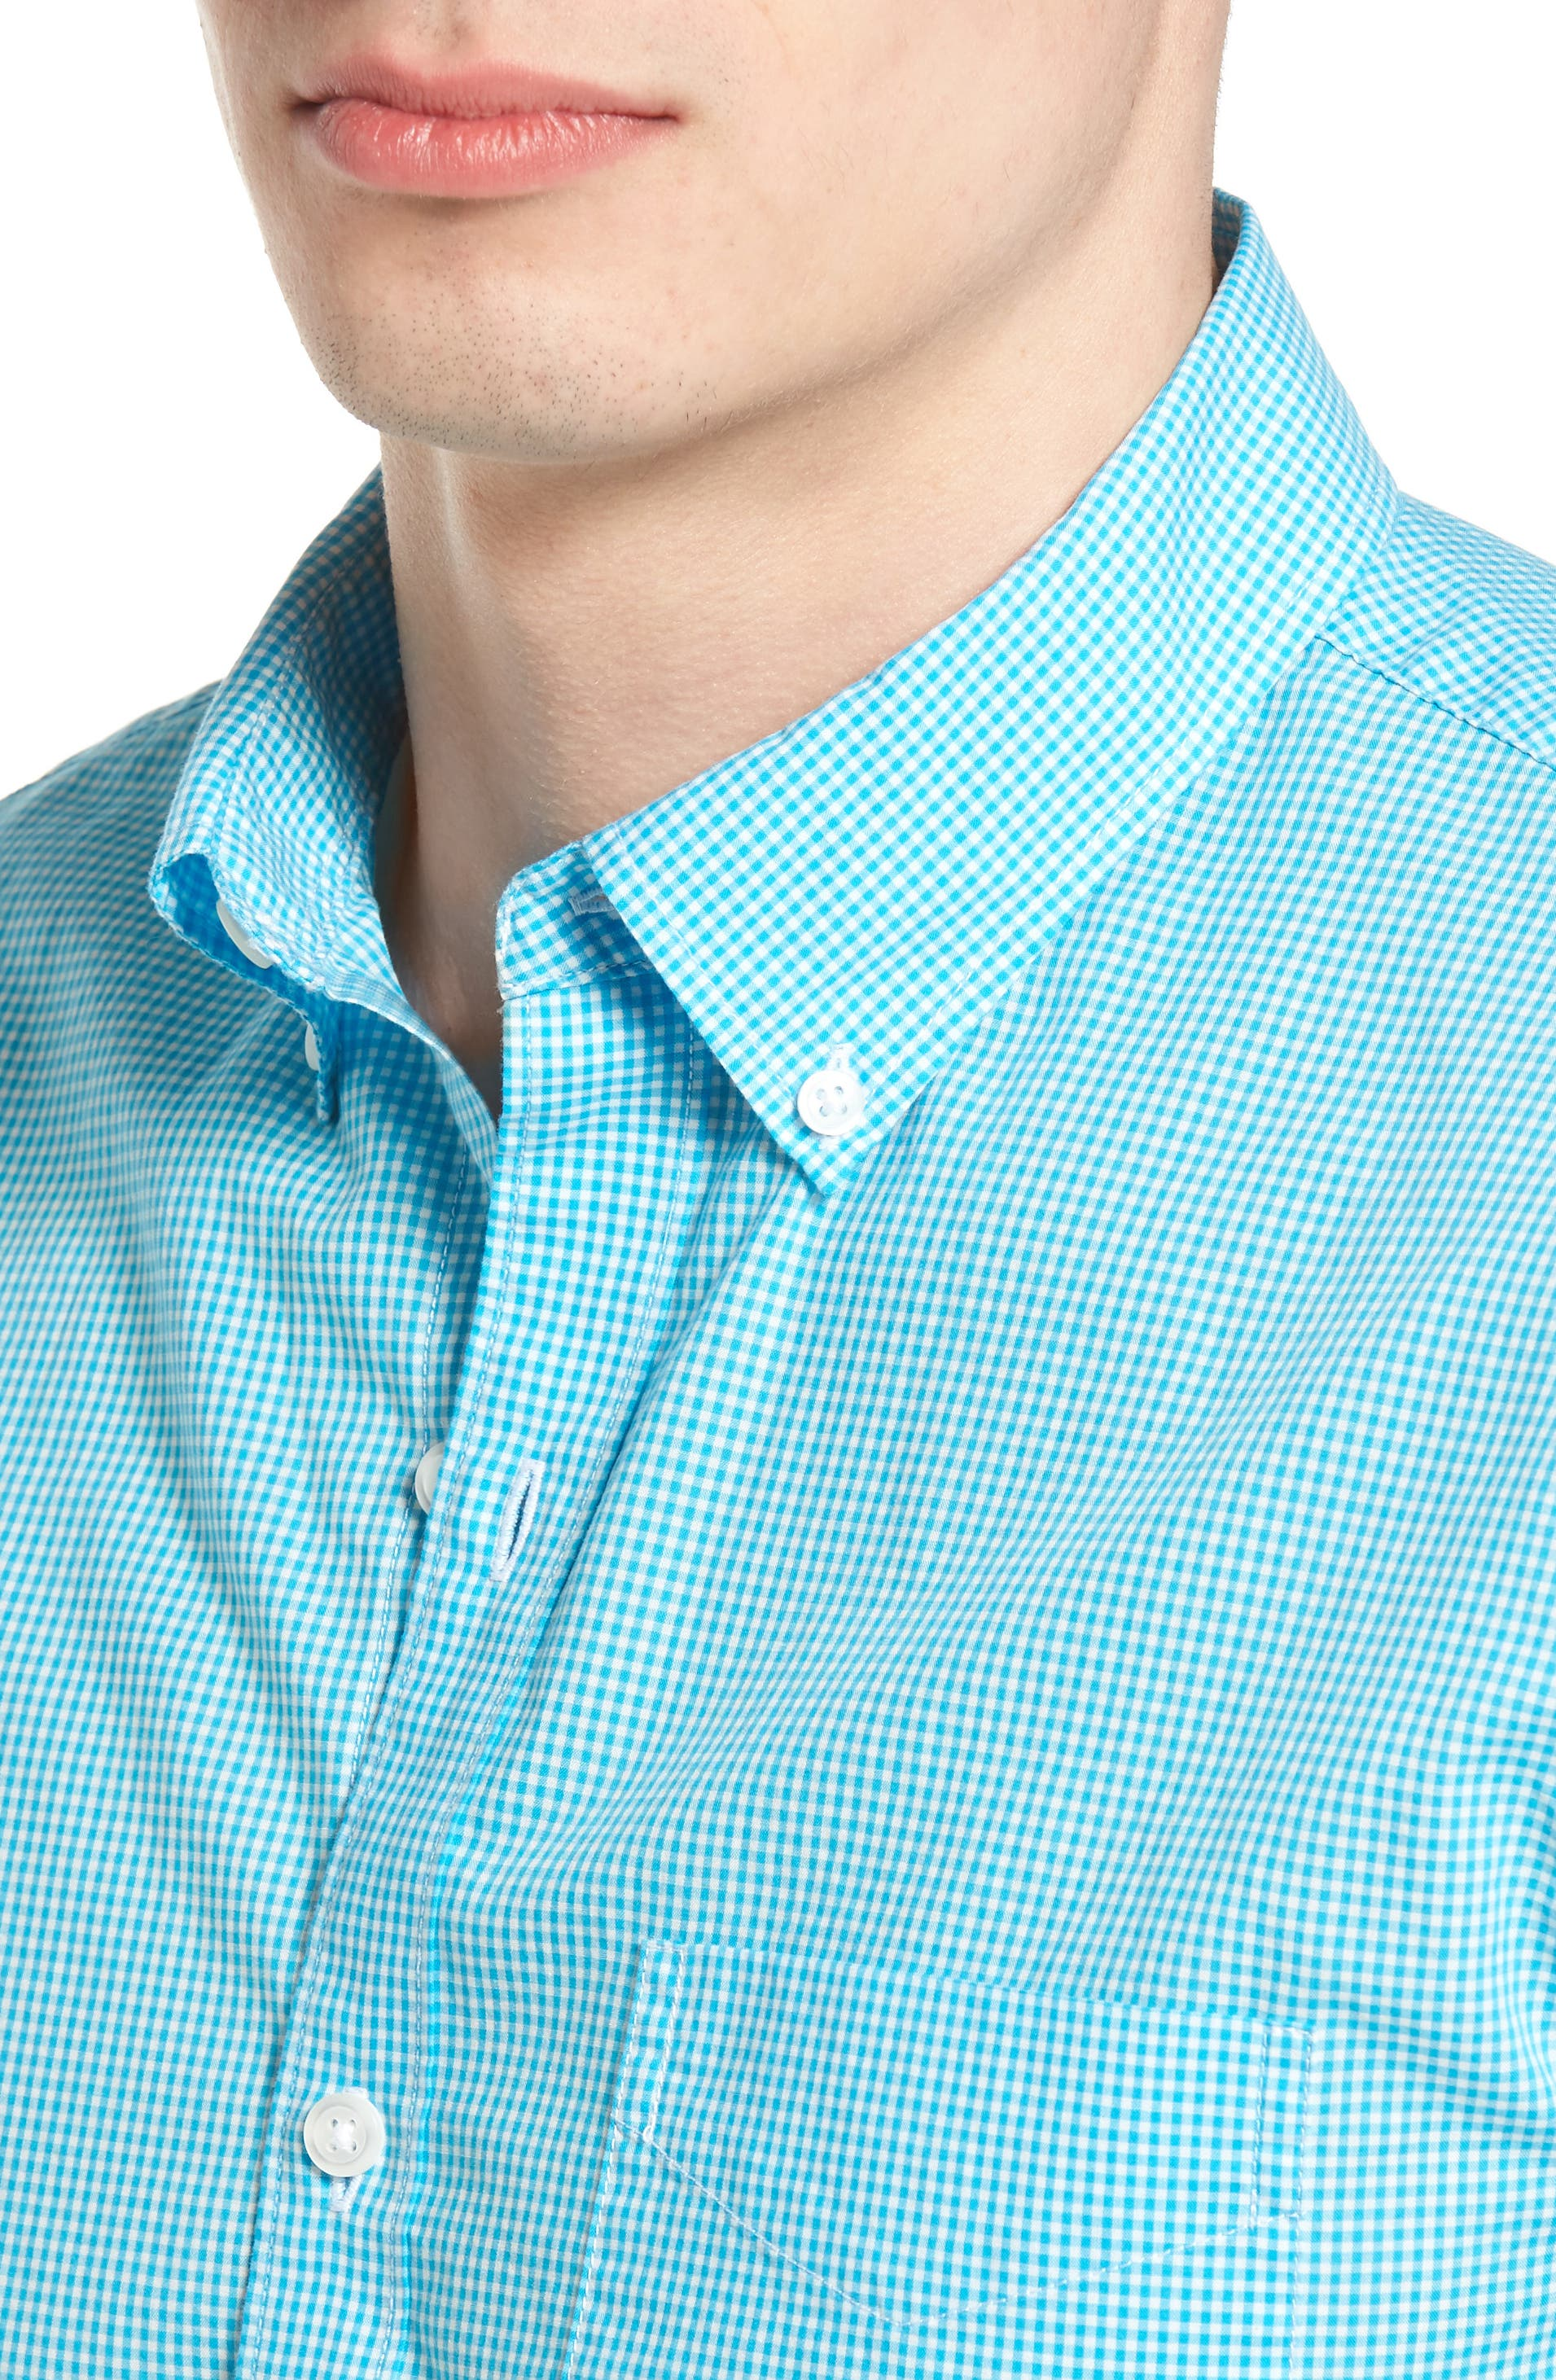 Summerweight Slim Fit Sport Shirt,                             Alternate thumbnail 4, color,